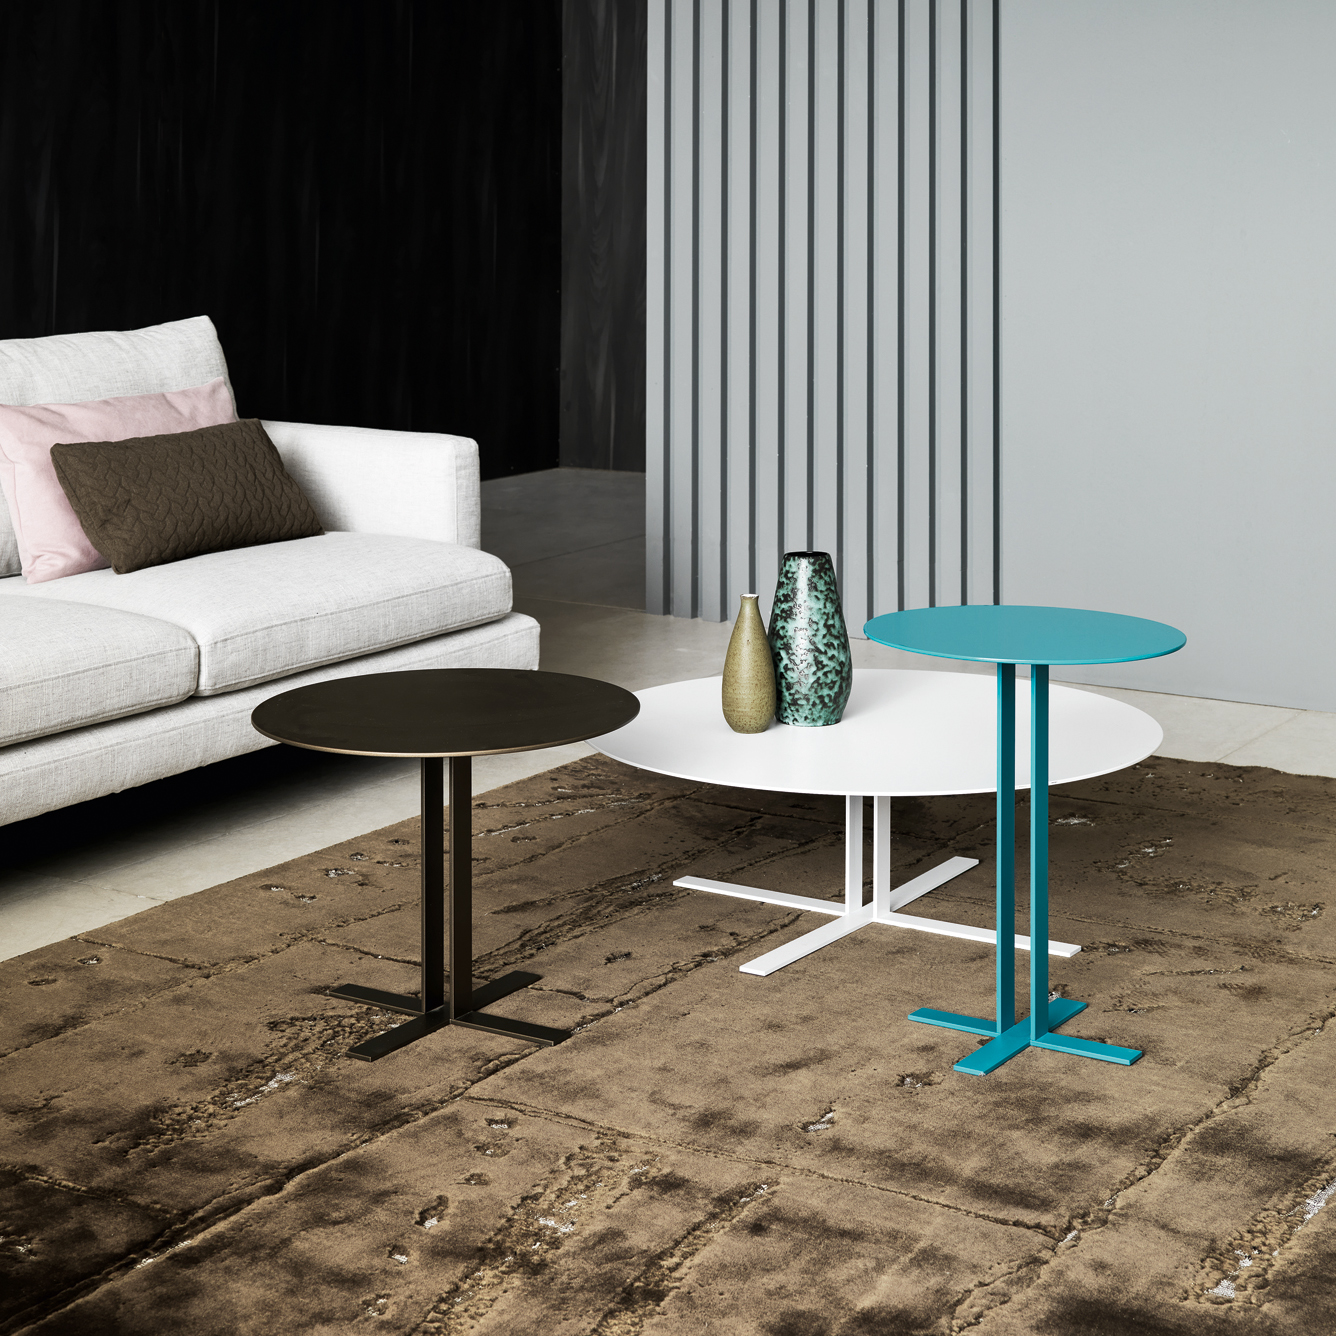 SabaItalia_PIU_side_table_1